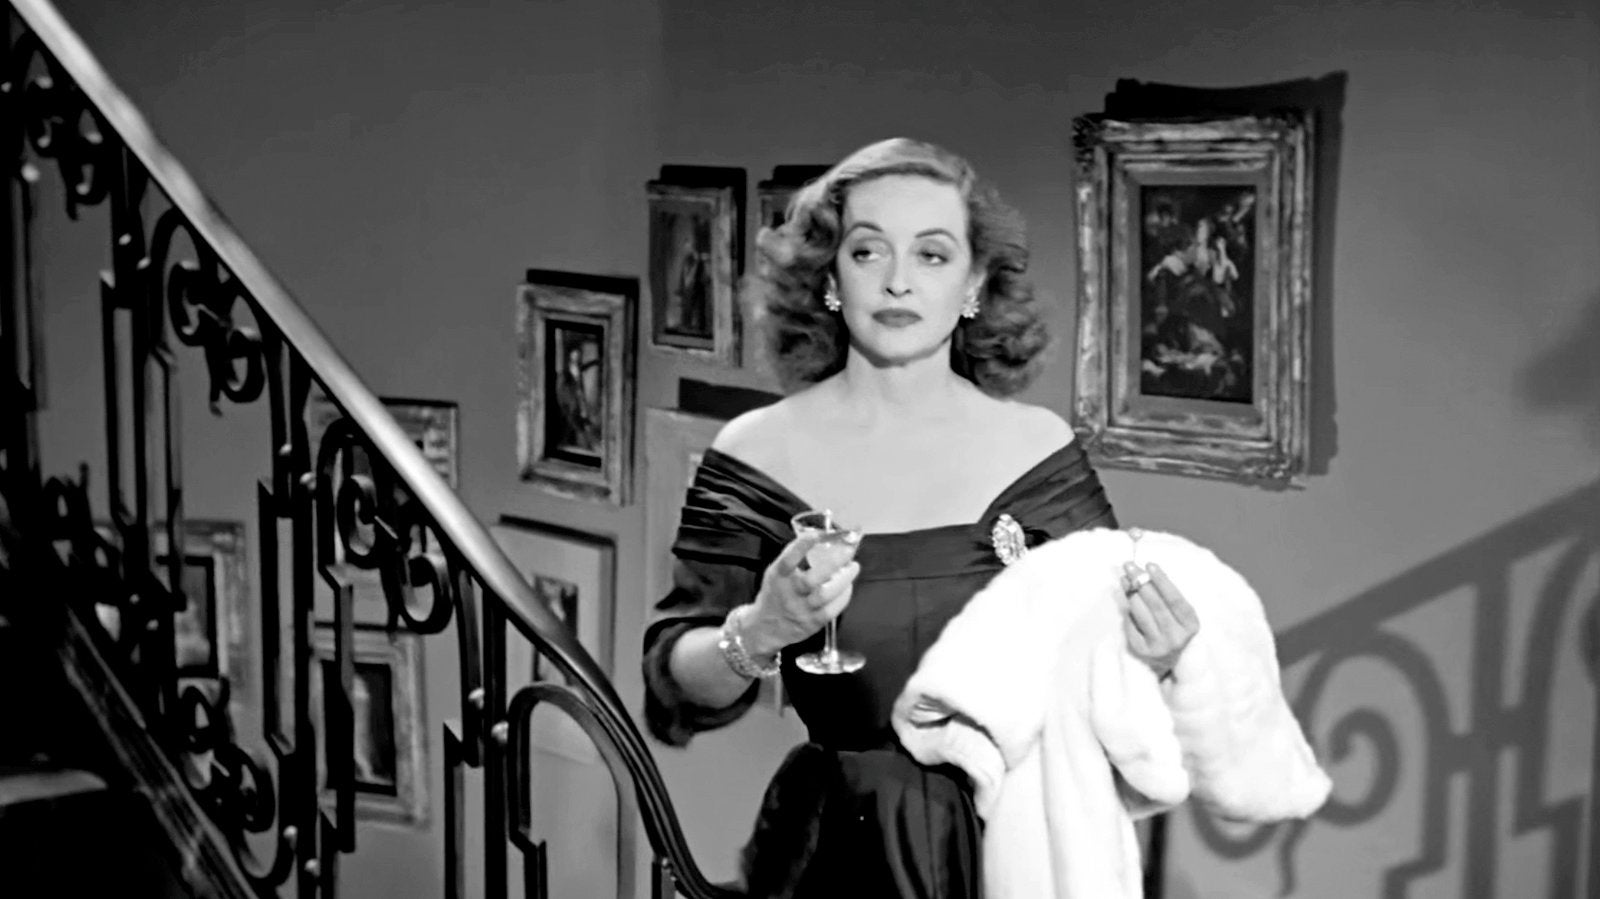 Acress Bette Davis, Cecil B. deMille recipient in a scene from All About Eve, 1950